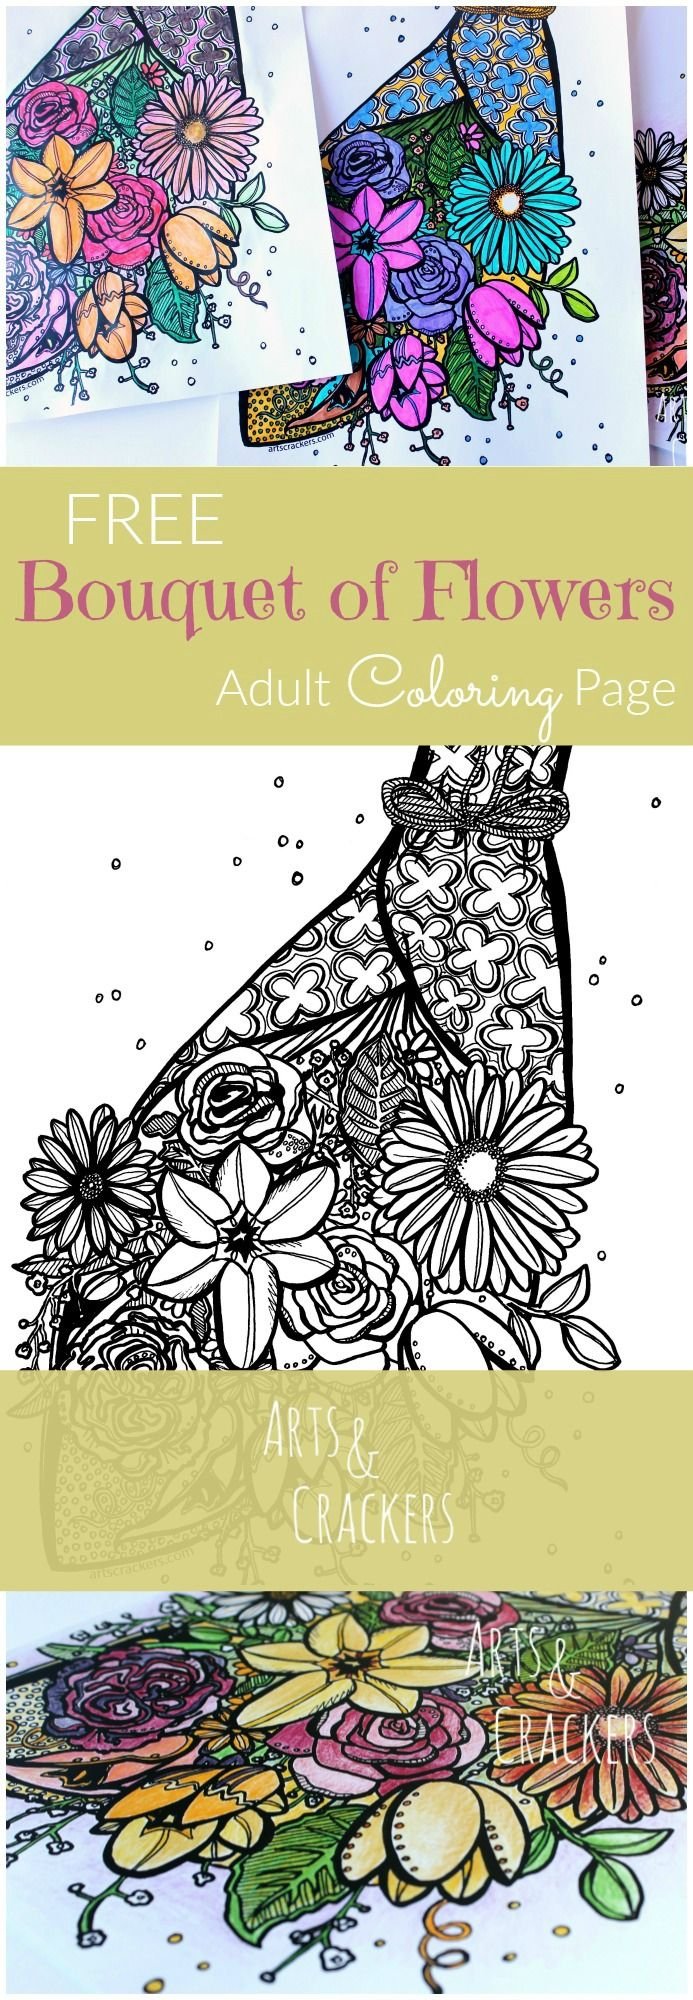 Coloring pages for donna flor - Free Bouquet Adult Coloring Page